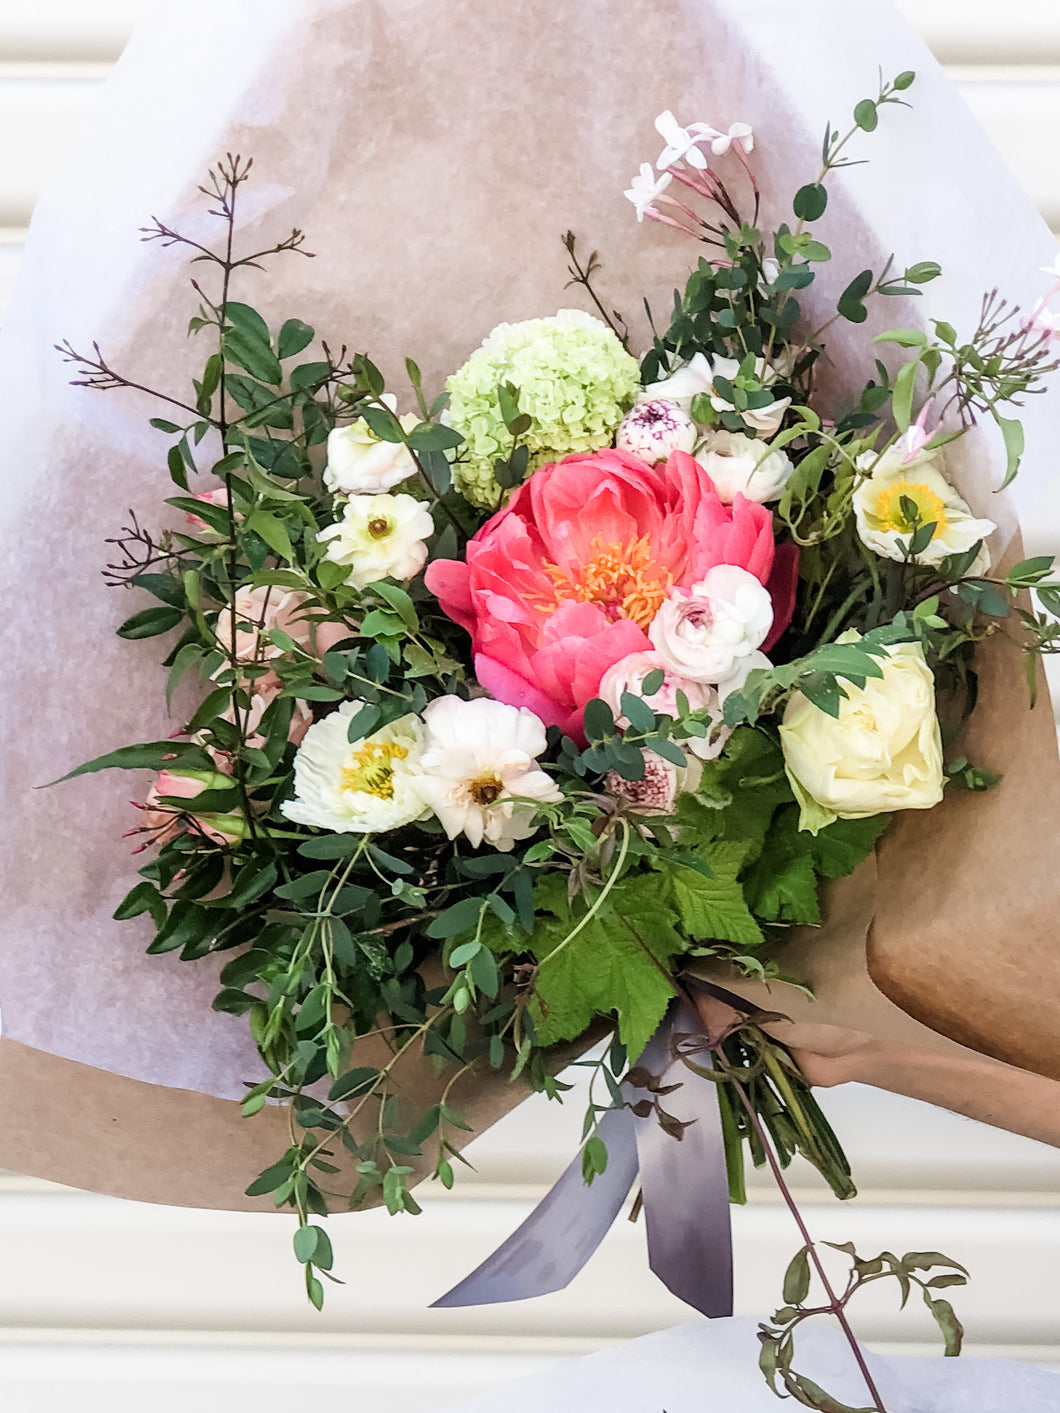 Large hand-tied bouquet